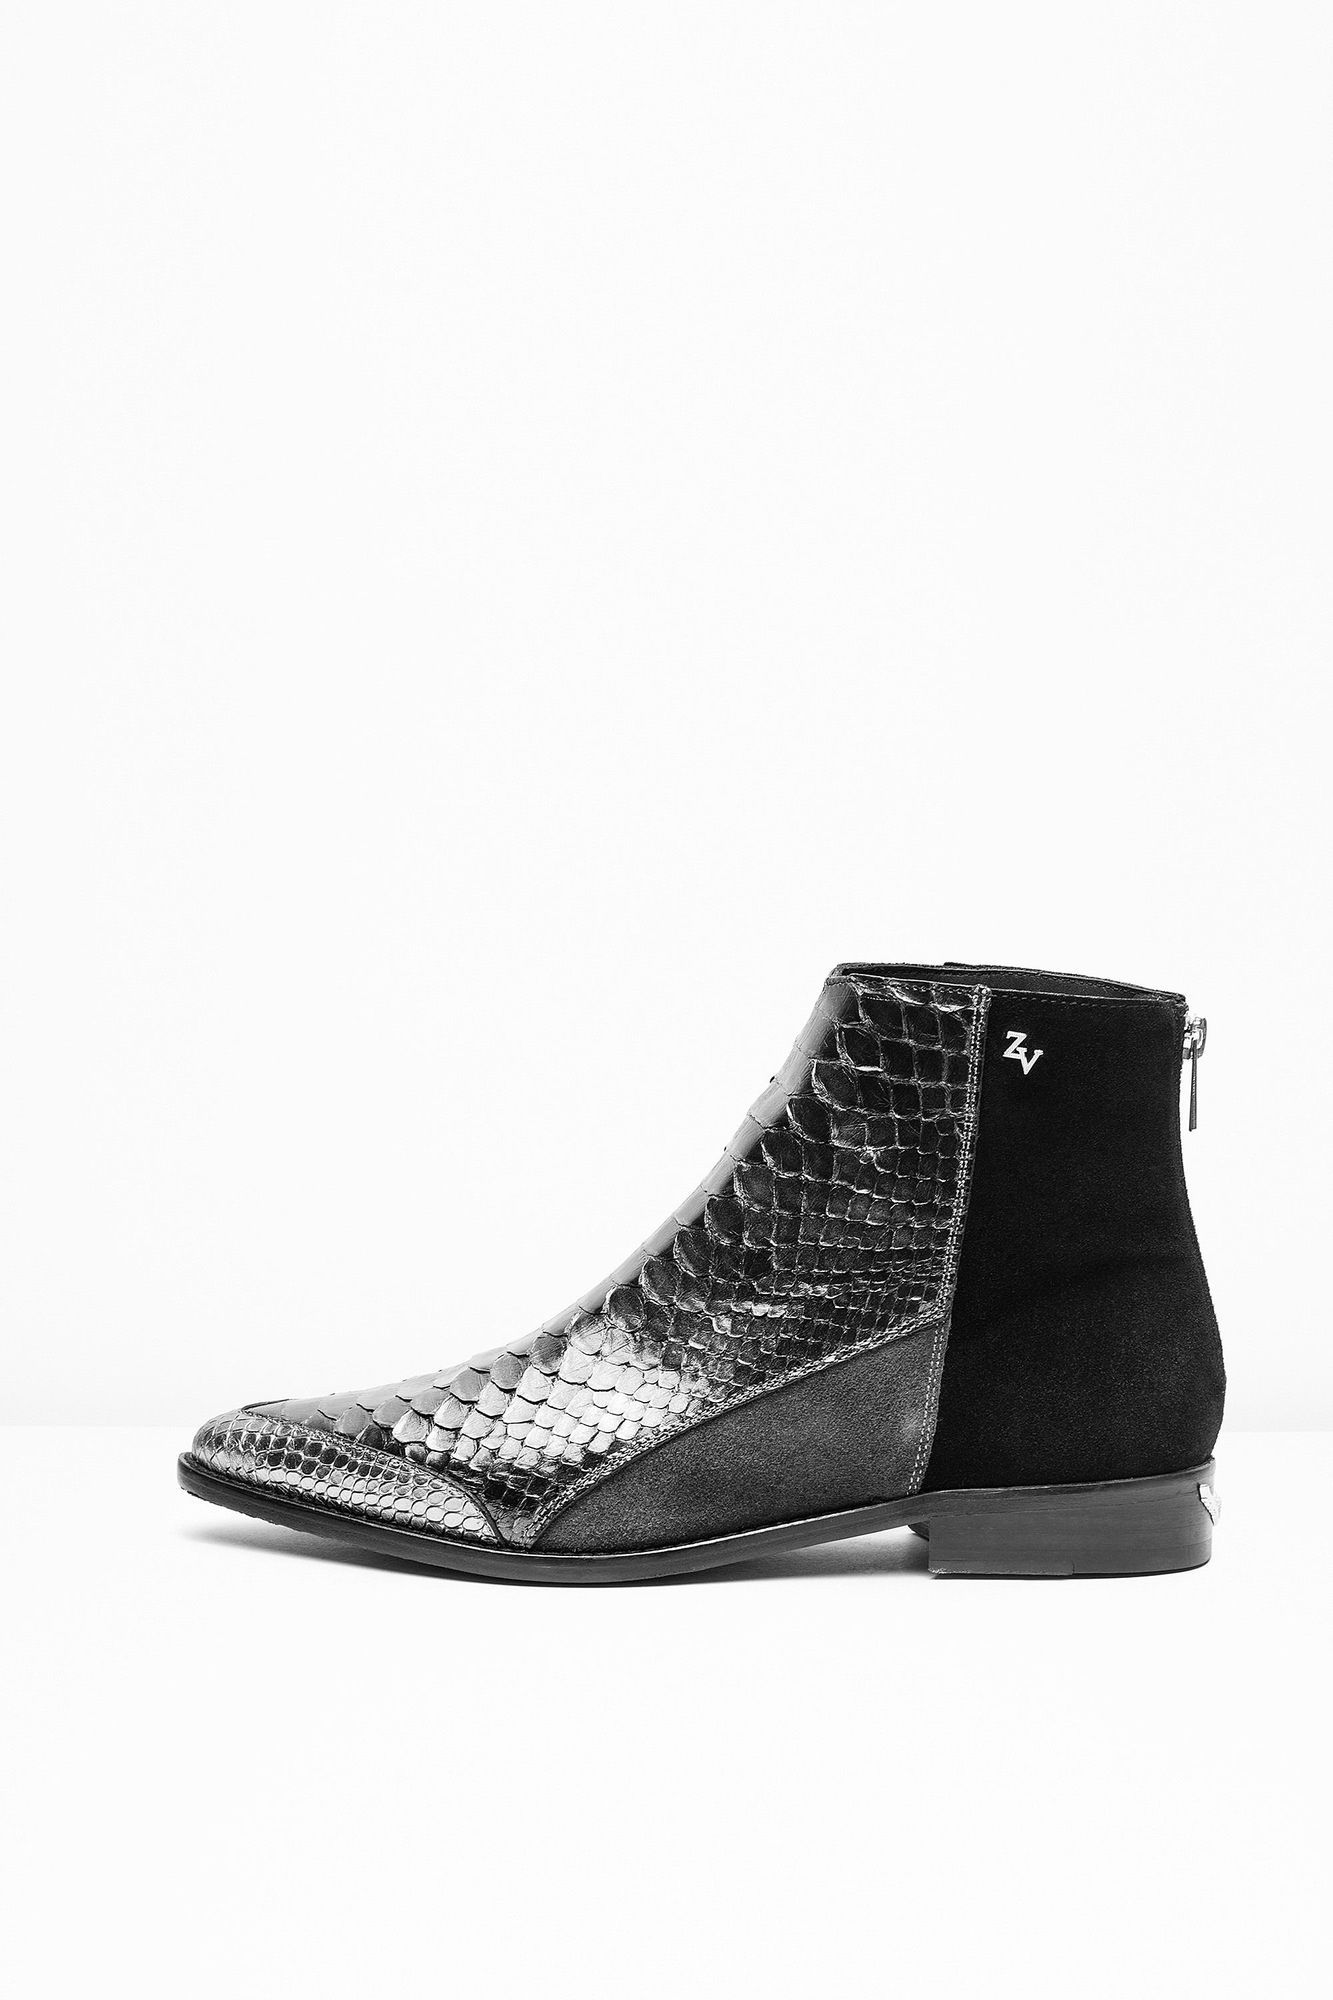 competitive price 26b53 d8ef0 Shopping : Passion Glitter | Metallic boots | Shoe boots ...